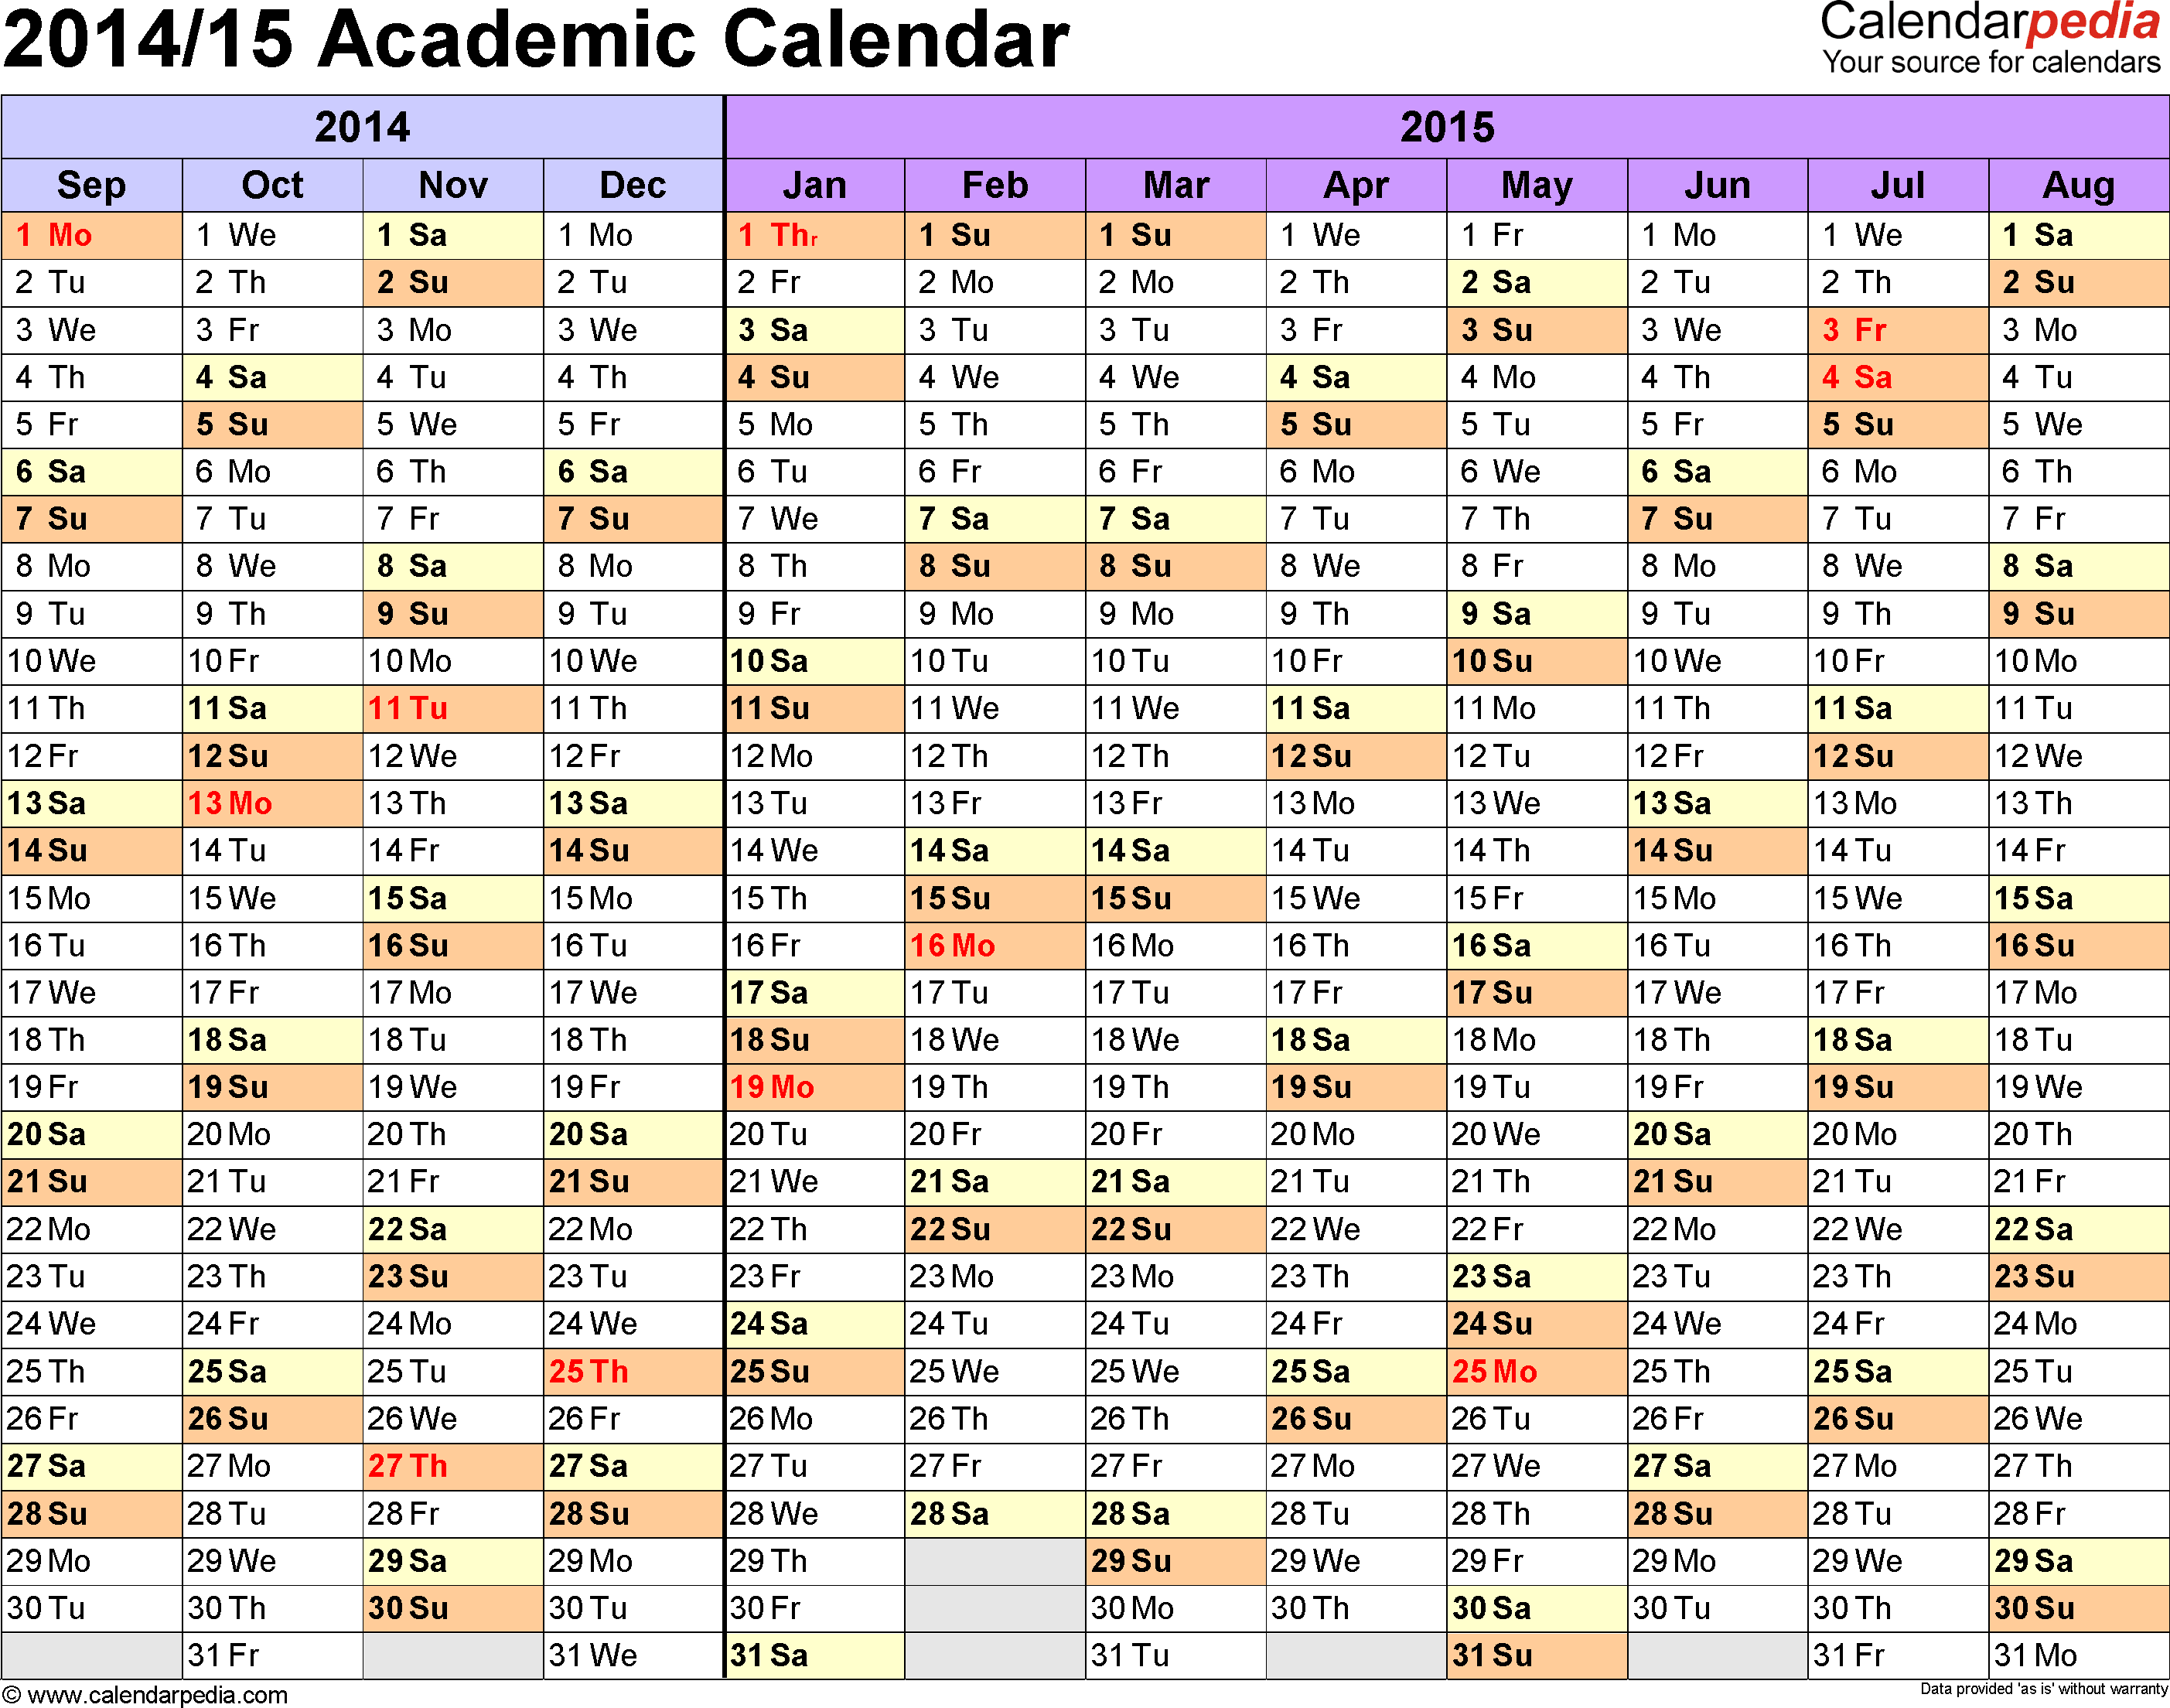 Template 1: Academic calendar 2014/15 for Word, landscape orientation, months horizontally, 1 page